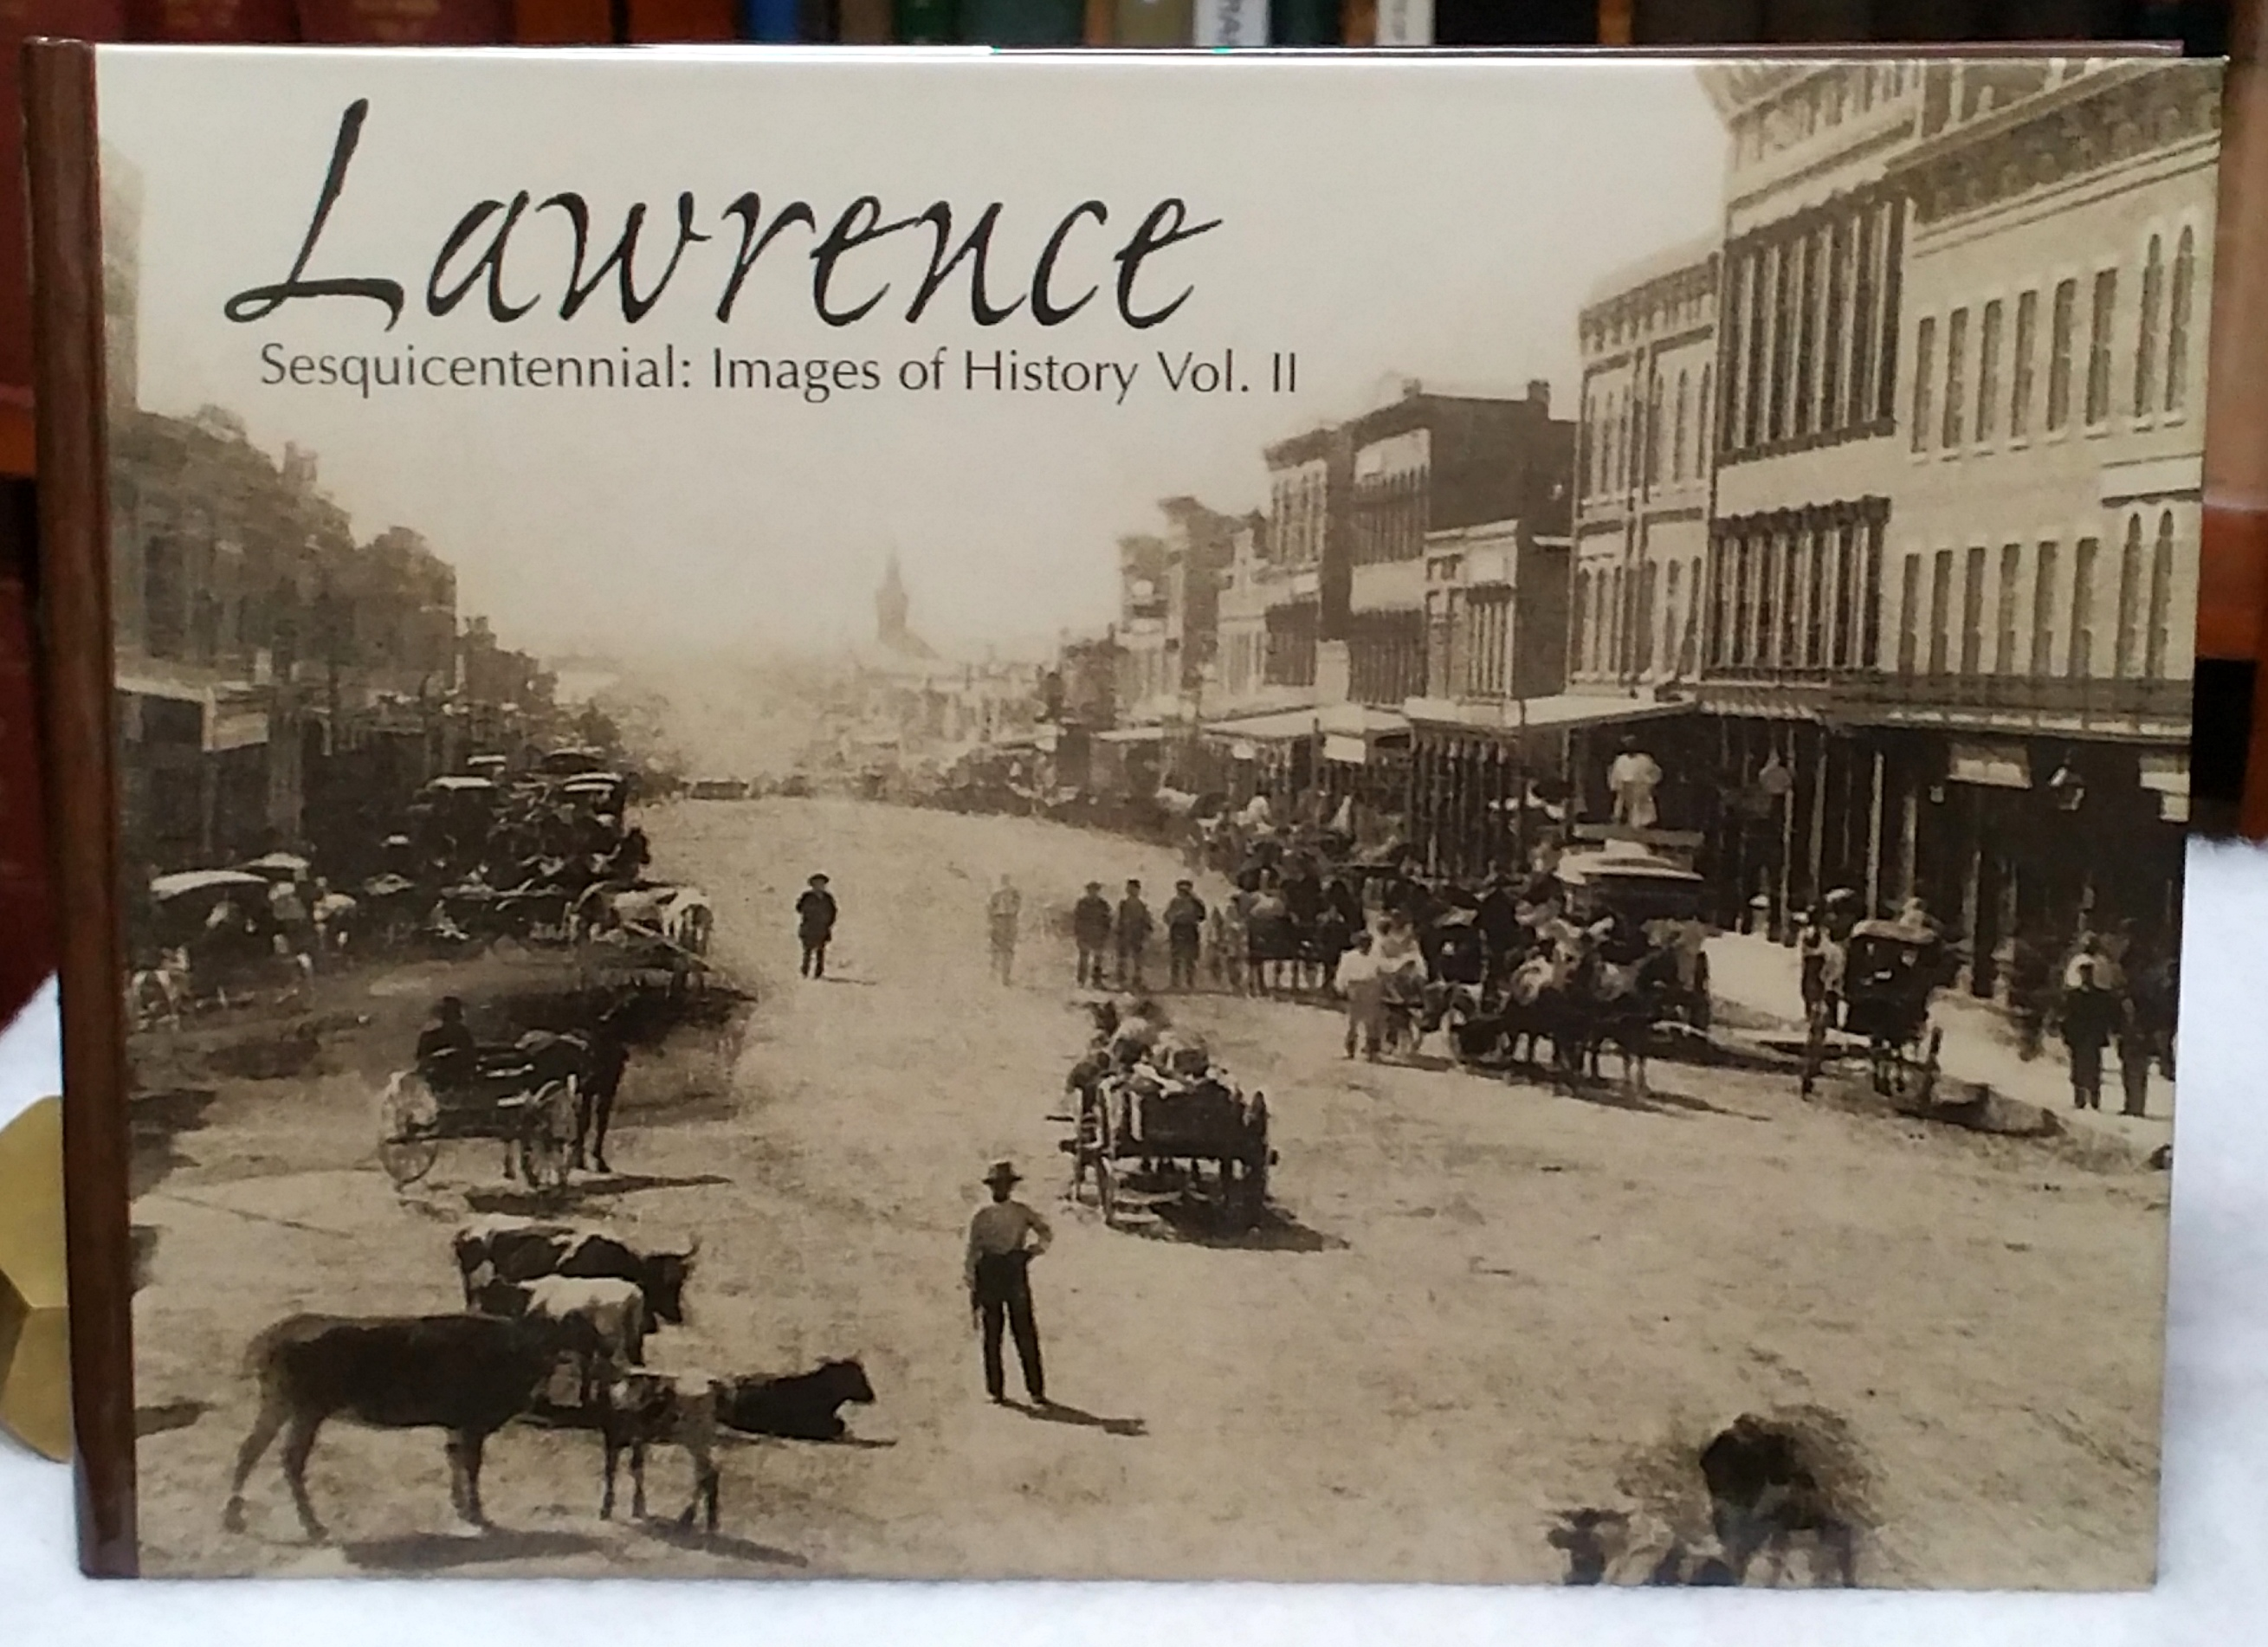 Image for Lawrence Sesquicentennial:  Images of History Vol. II